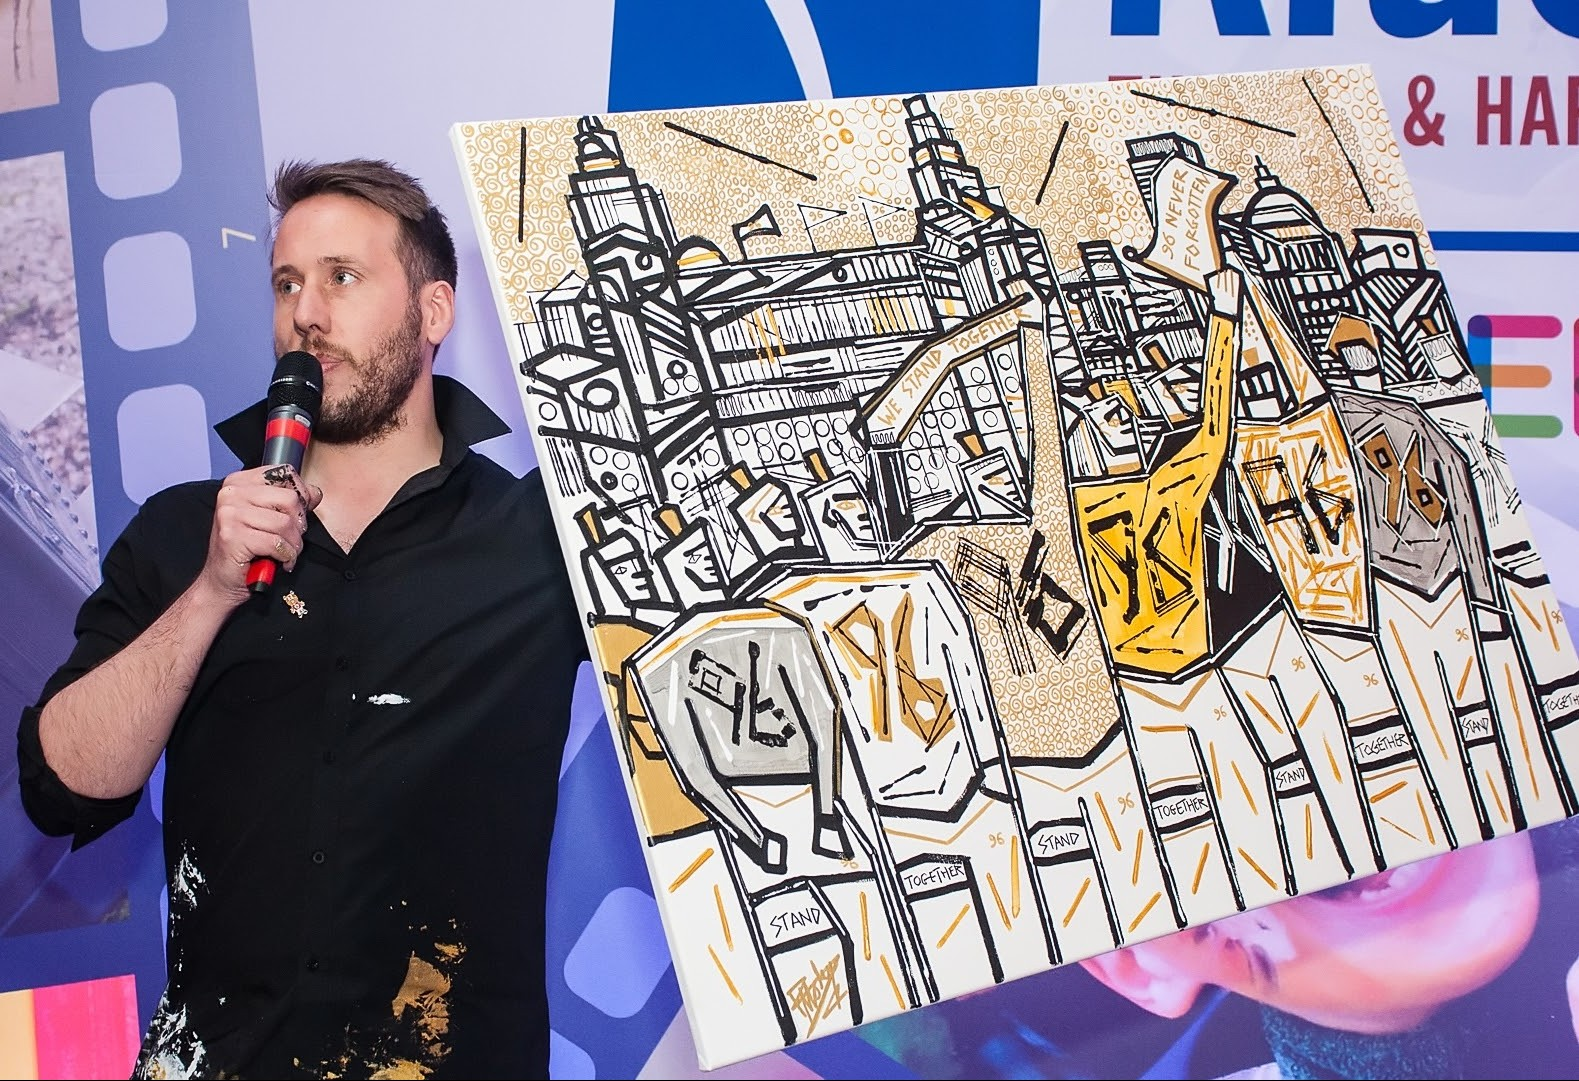 Artist Ben Moseley displays artwork he painted during the 2016 Liverpool event.